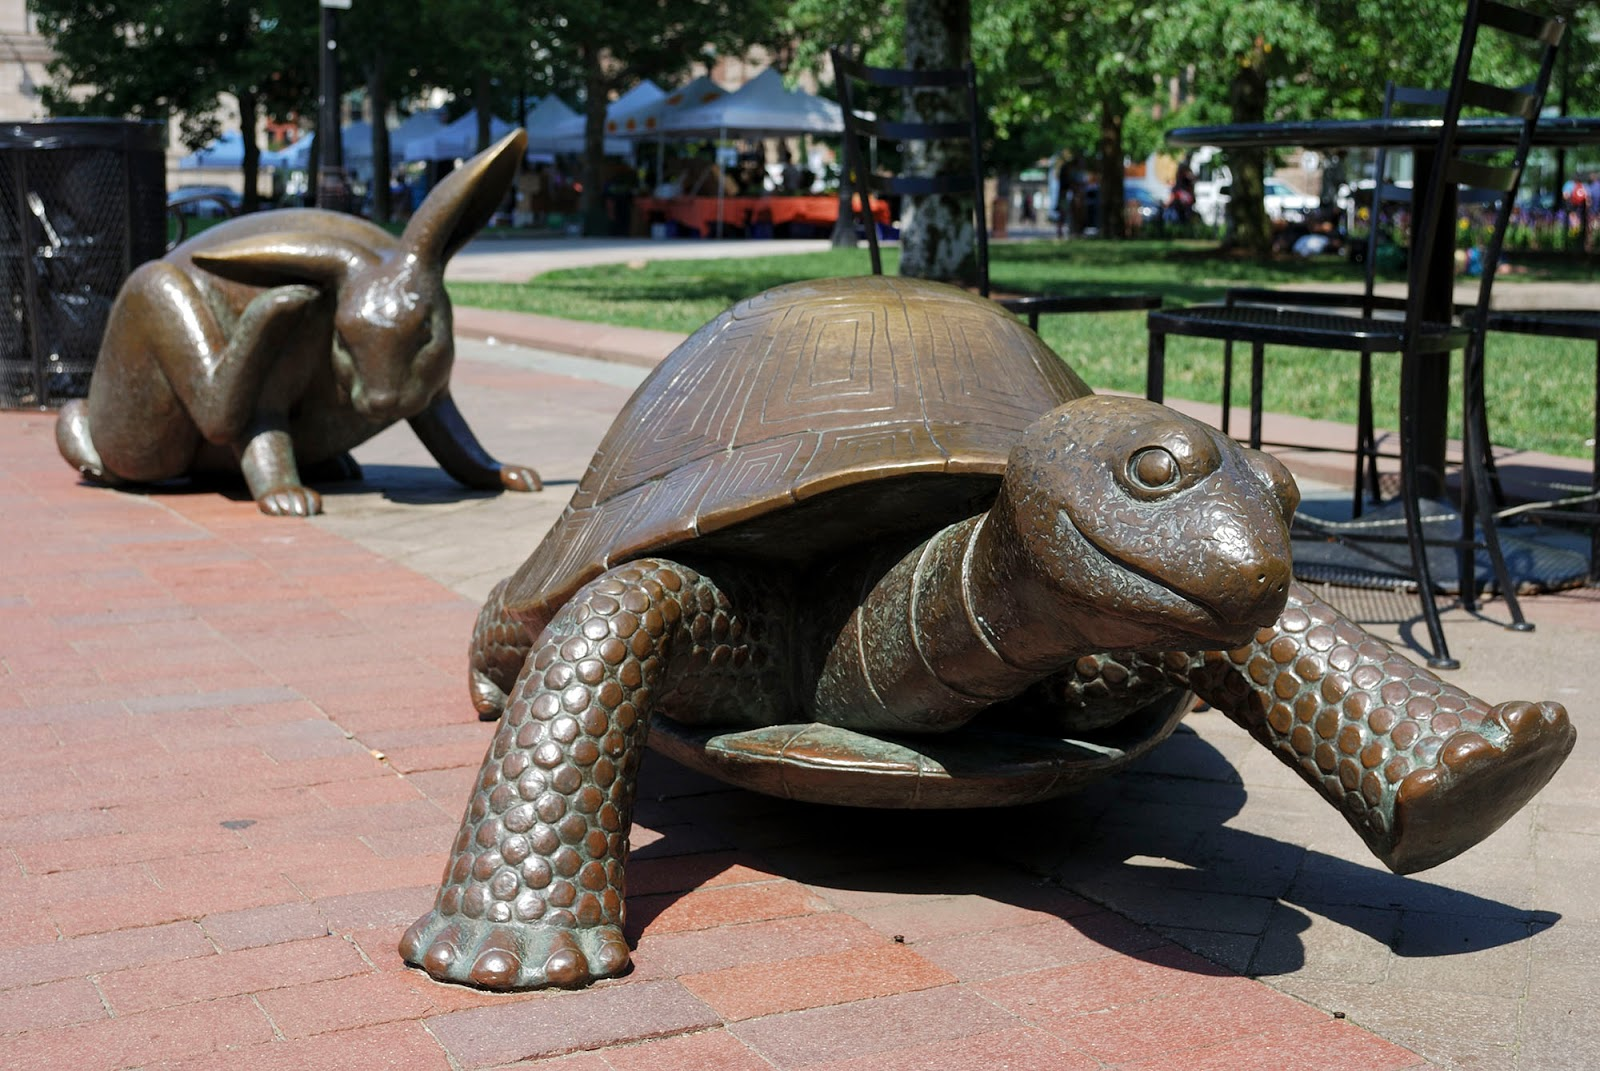 hare rabbit tortoise turtle statue copley square trinity church boston itinerary plan guide tourism usa america park east coast